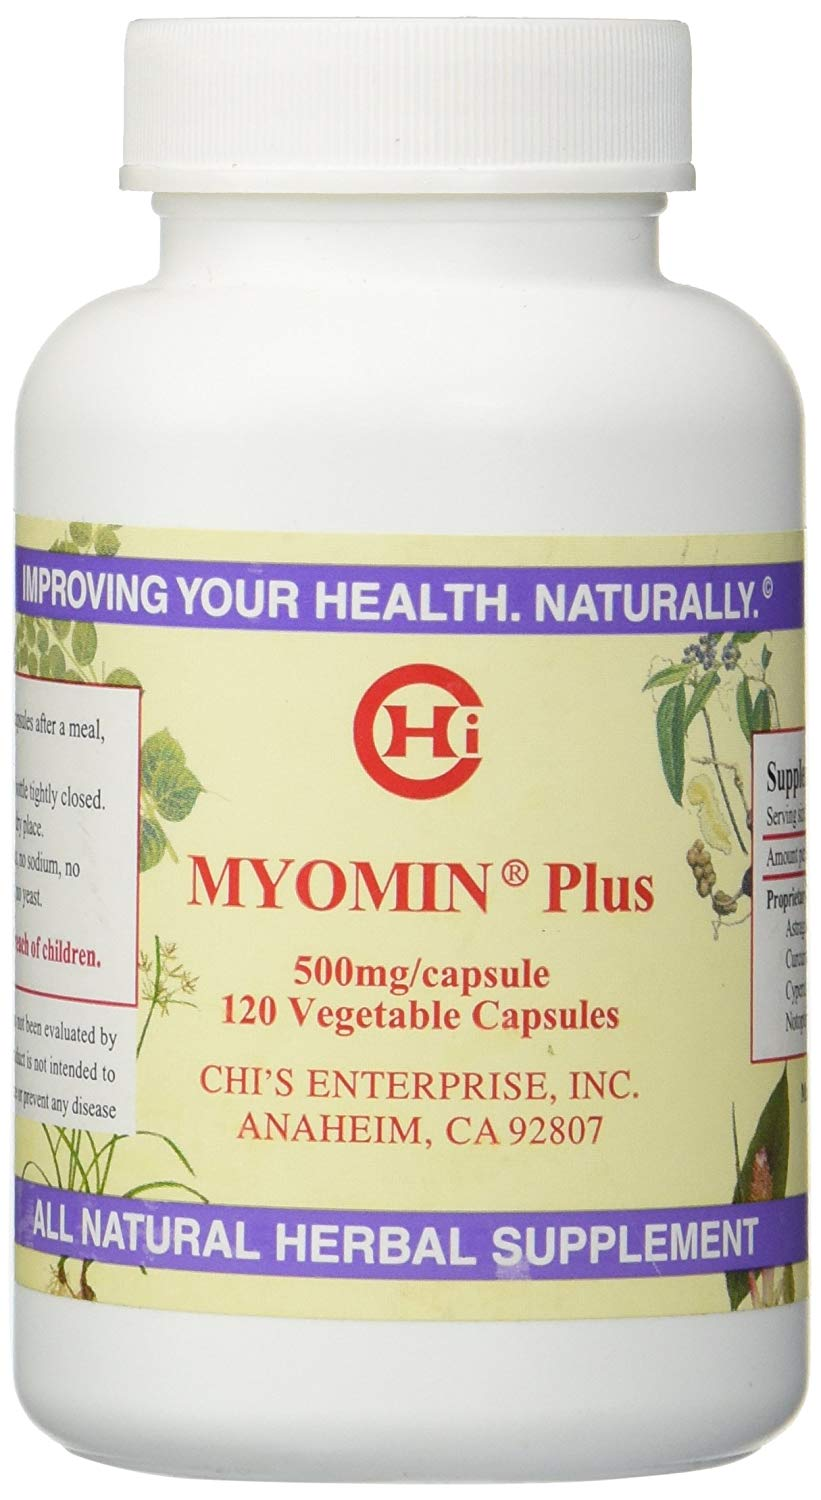 Chi's Enterprise Myomin Plus Capsules, 500mg, 120 Capsules